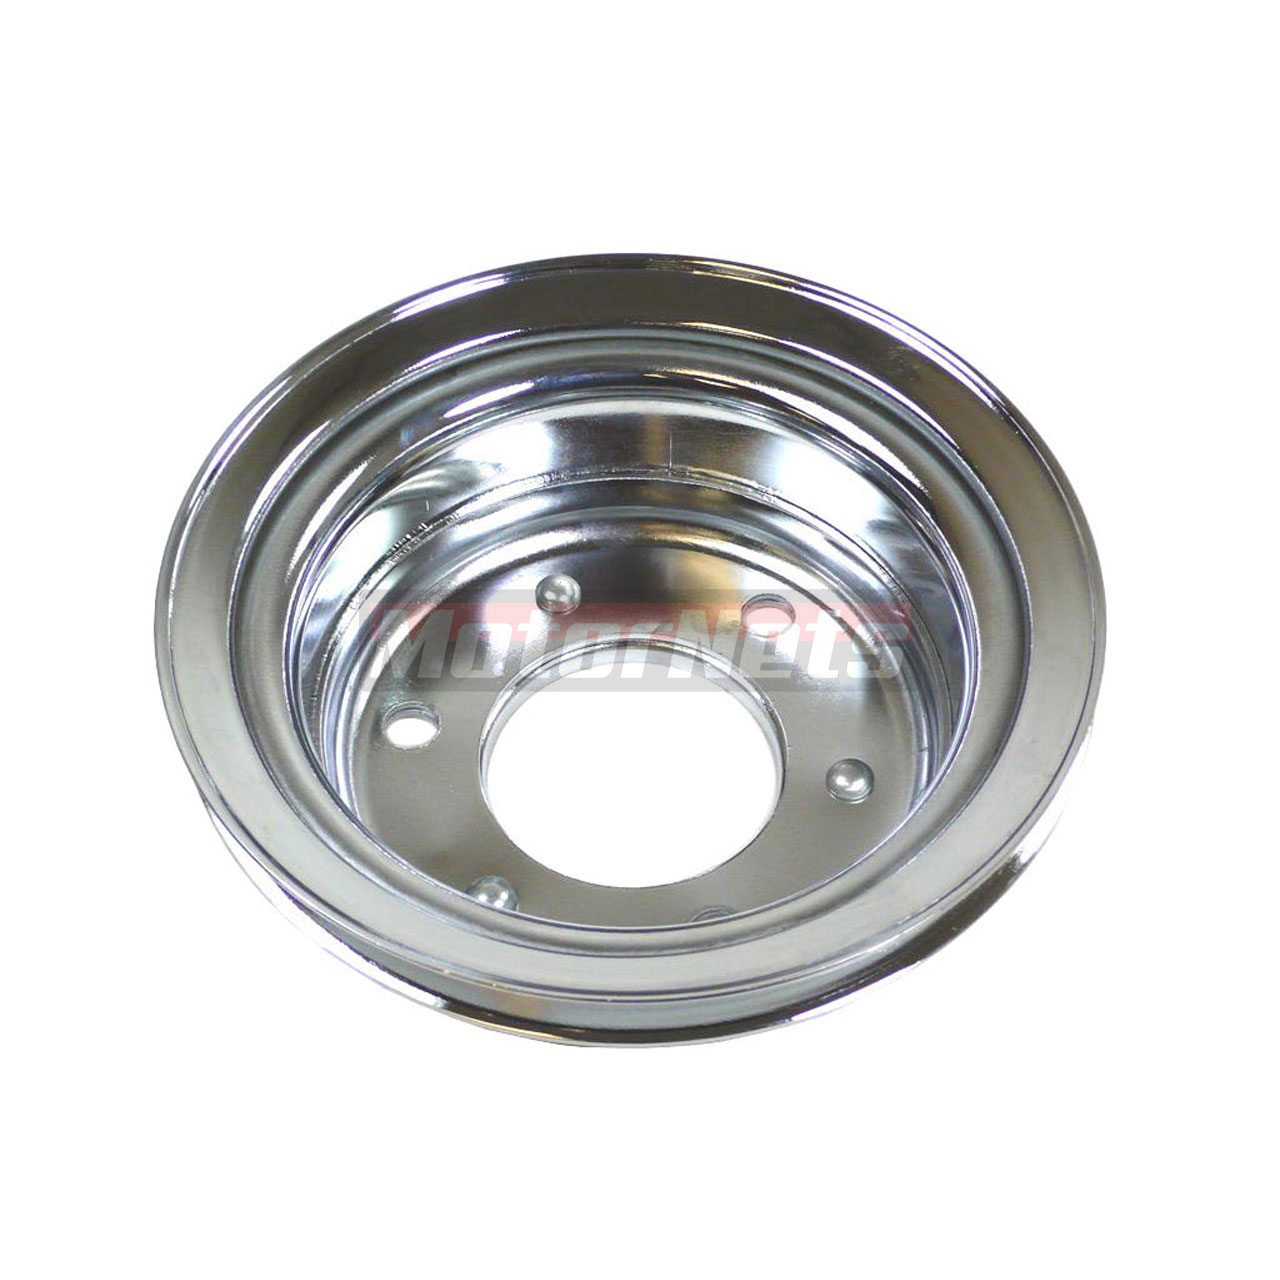 Chrome Steel Ford Mustang 289 Crankshaft Lower Pulley 65